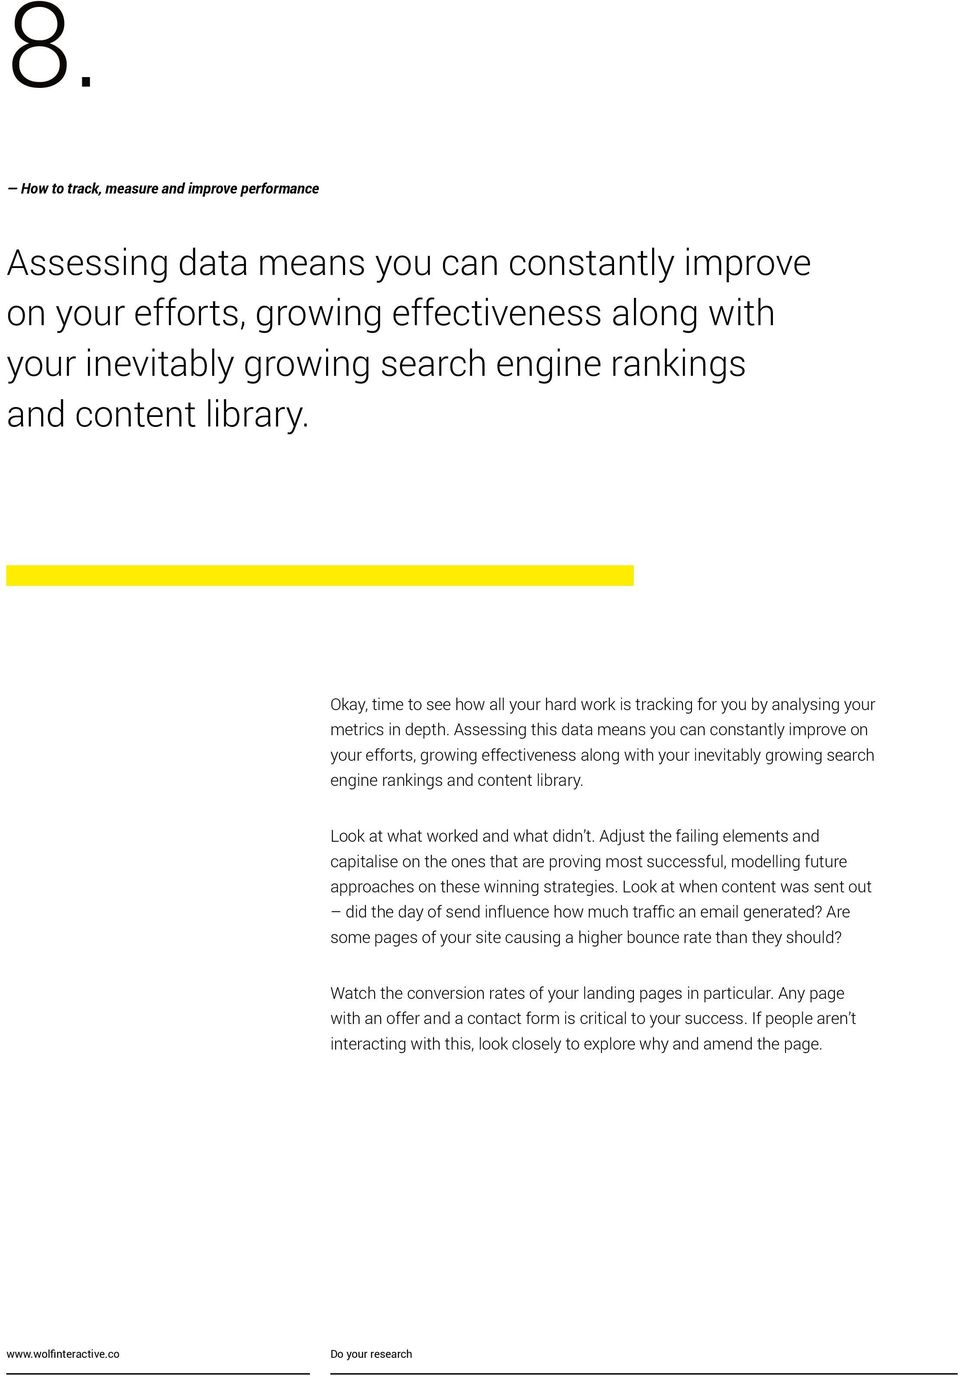 Assessing this data means you can constantly improve on your efforts, growing effectiveness along with your inevitably growing search engine rankings and content library.